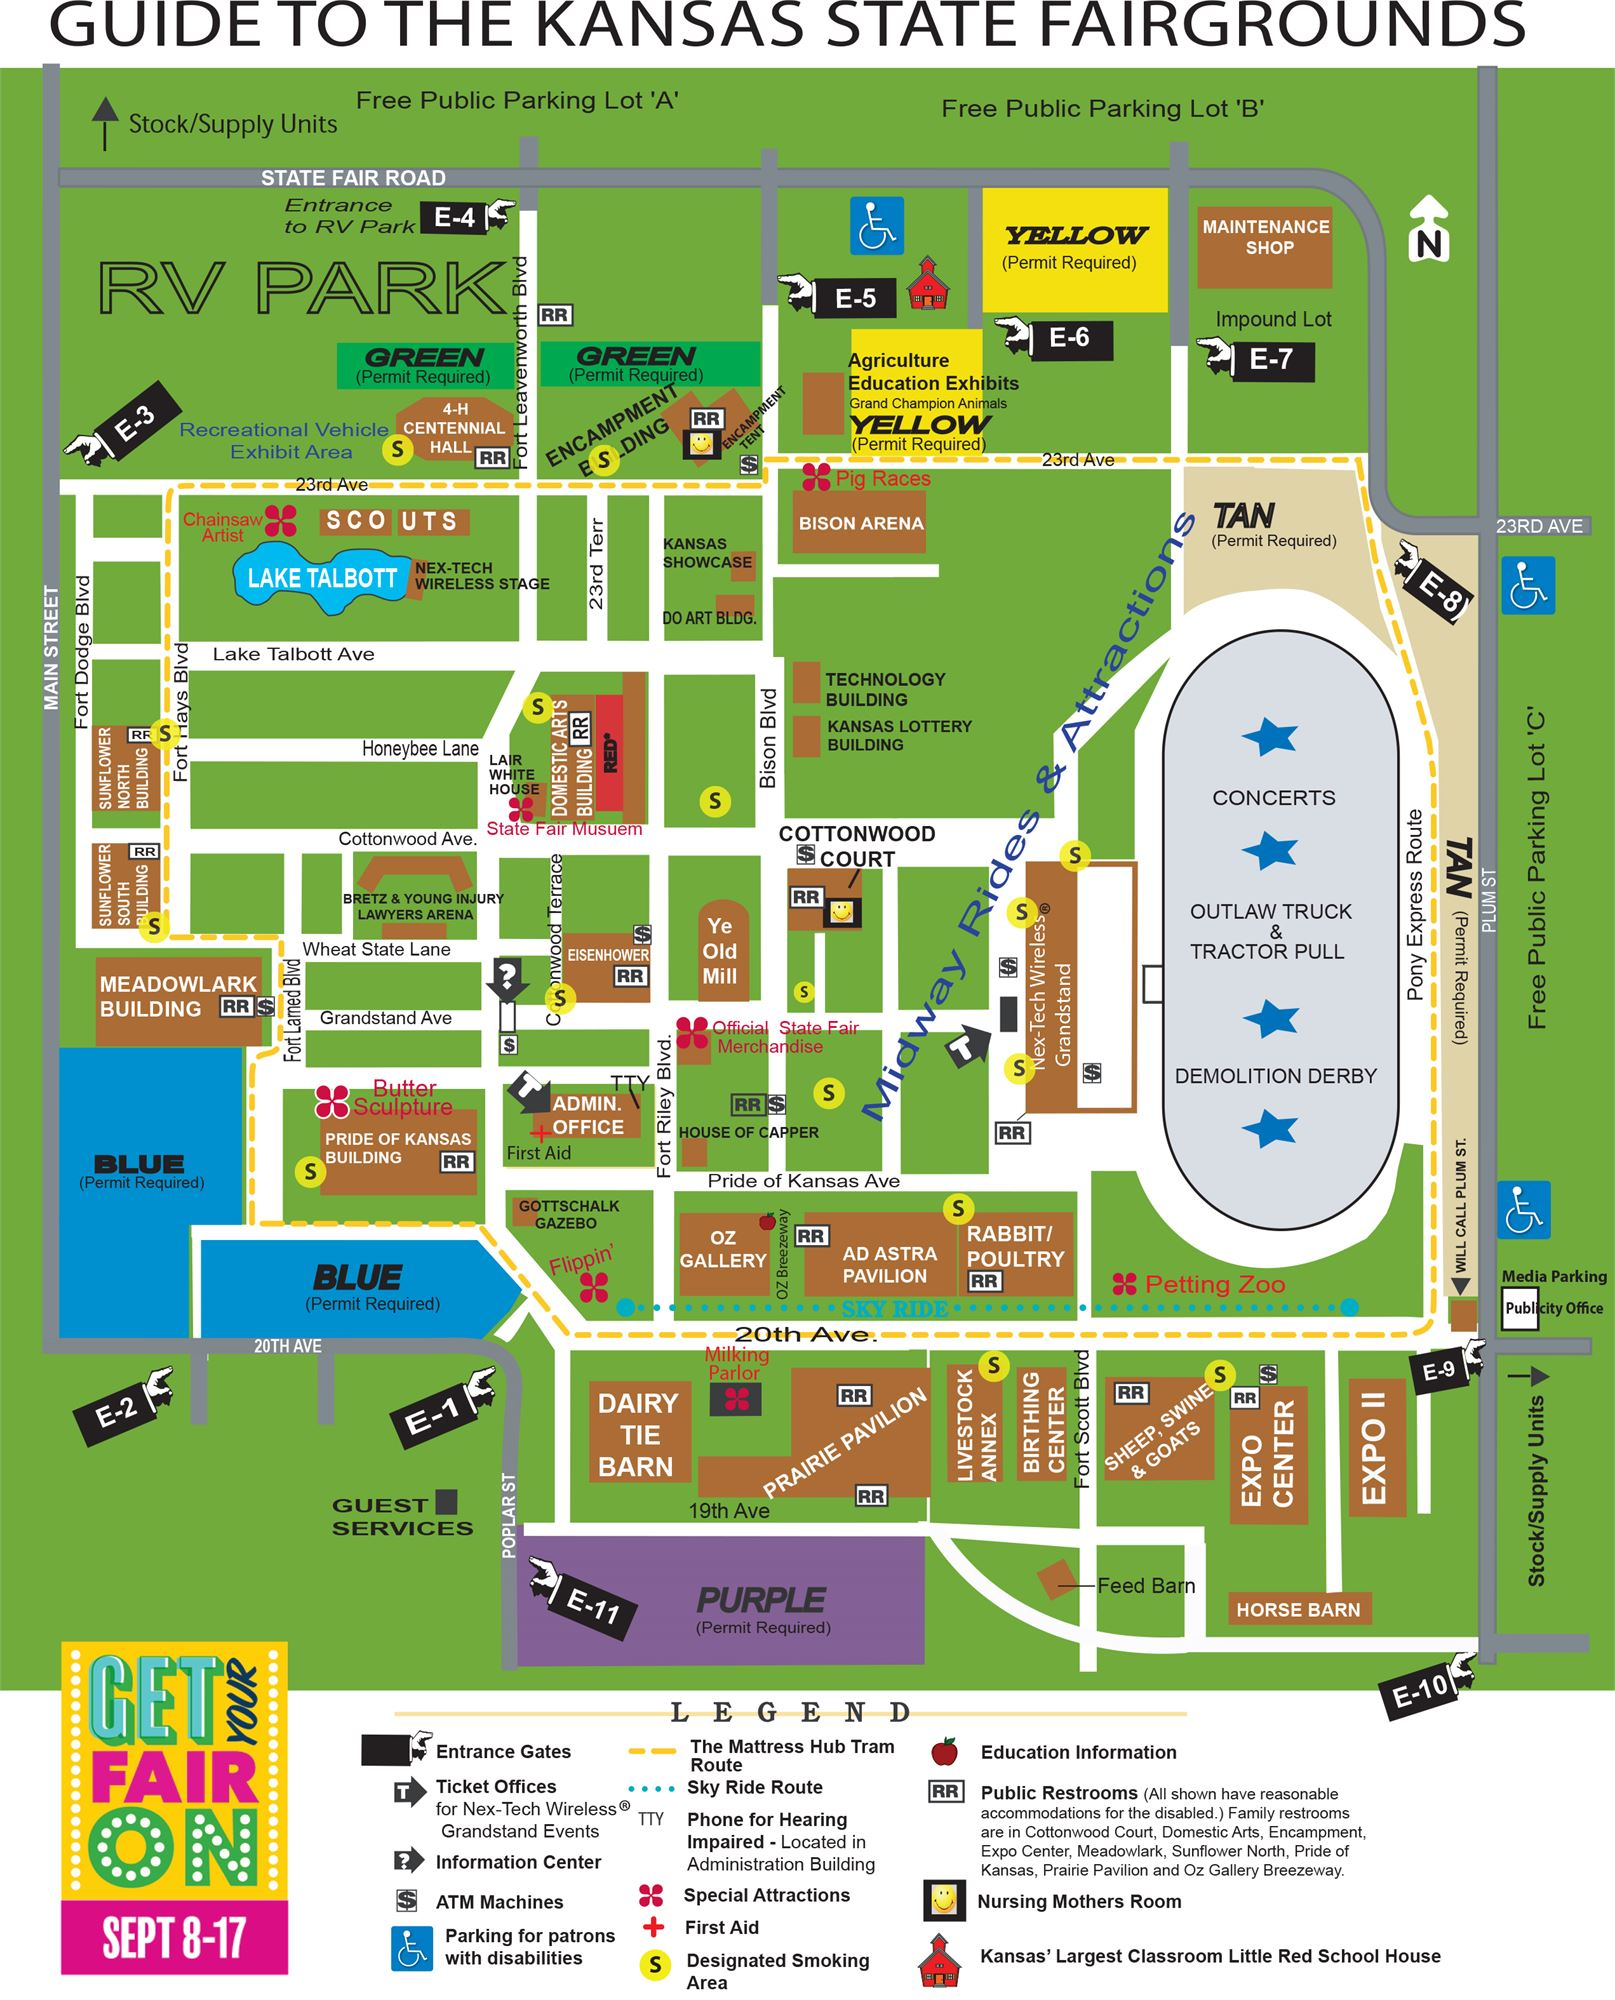 Event Map - Kansas state map